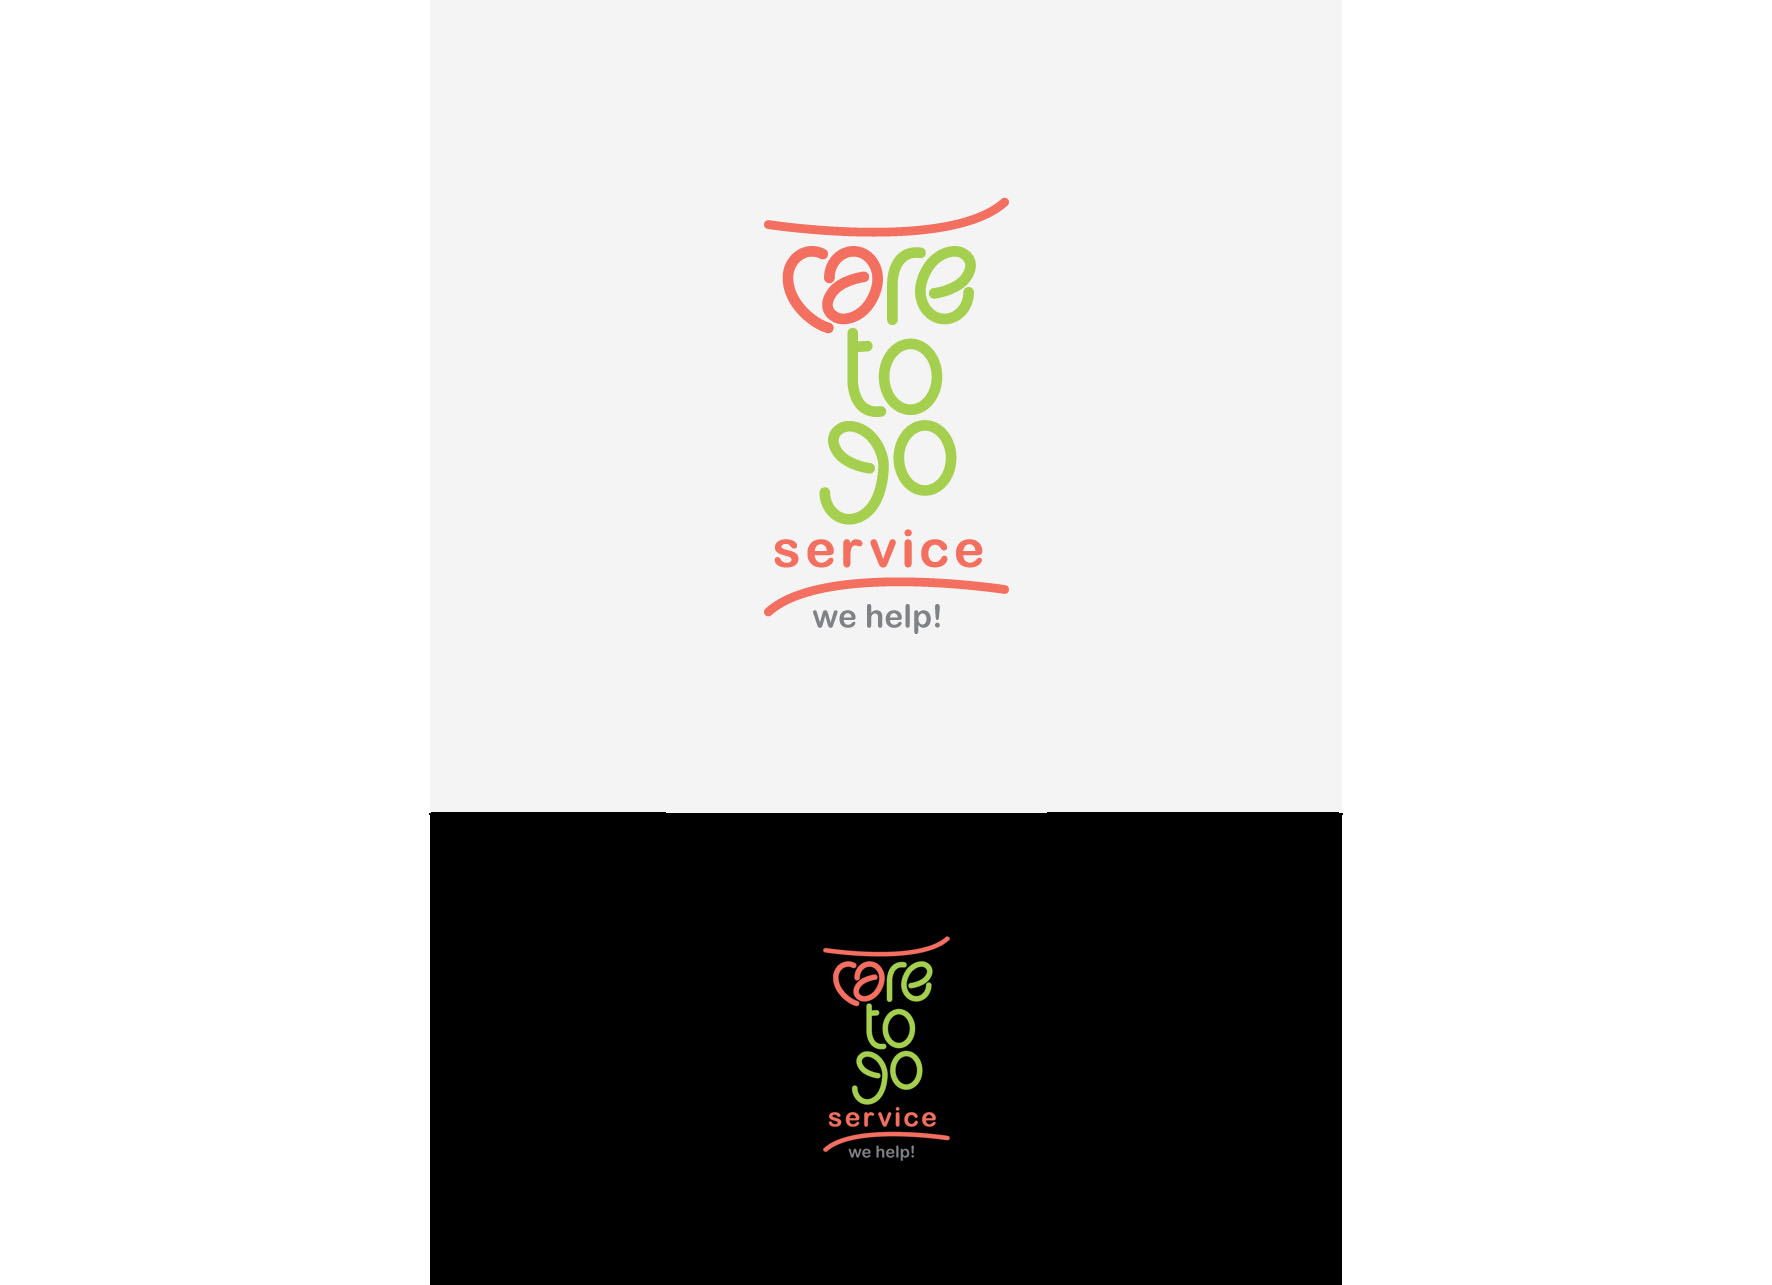 Logo Design by tanganpanas - Entry No. 219 in the Logo Design Contest Care To Go Services.